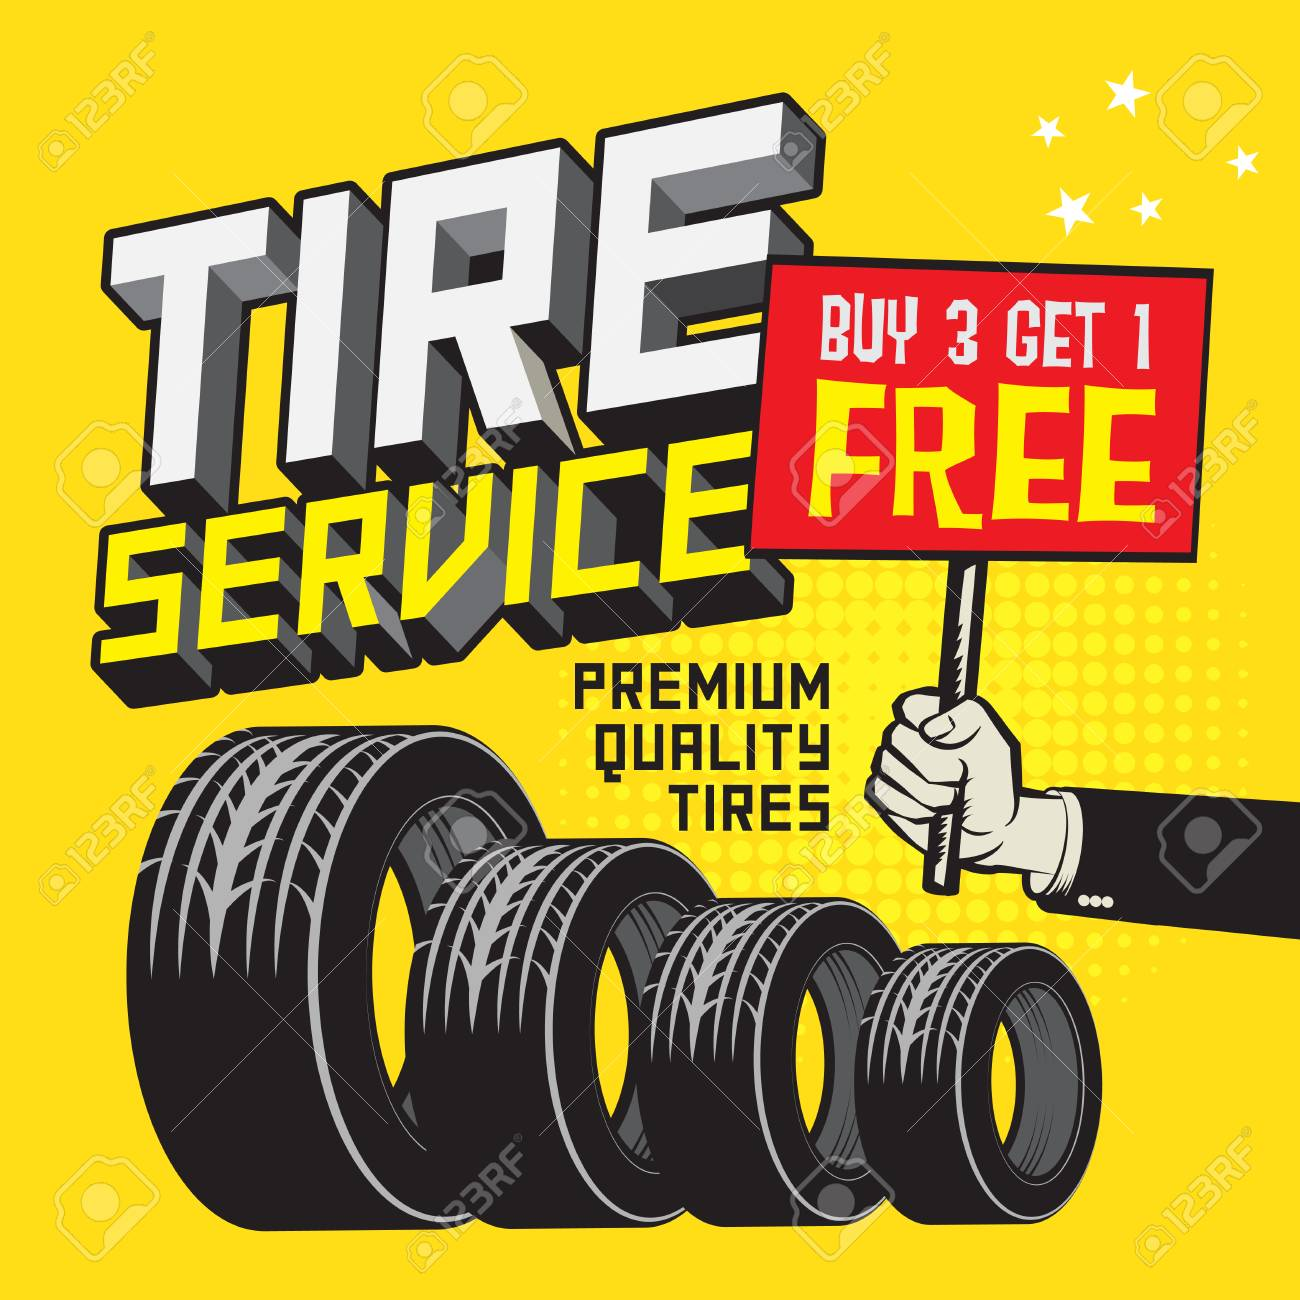 Buy 3 Get 1 Free Tires >> Vintage Tire Service Or Garage Poster With Text Tire Service